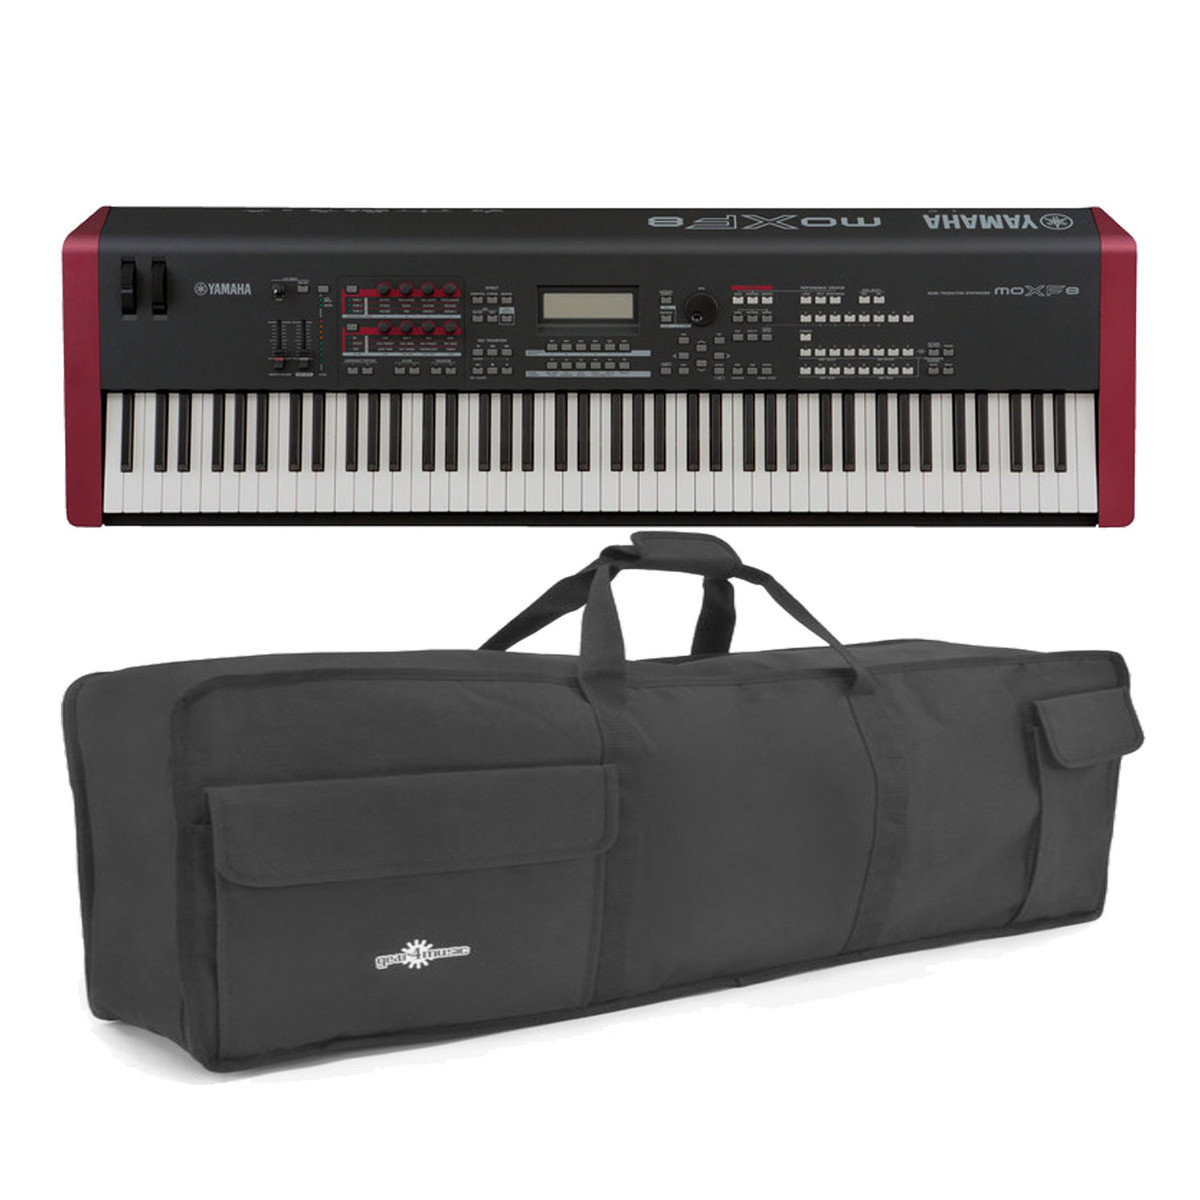 yamaha moxf8 synthesizer keyboard with soft case at gear4music. Black Bedroom Furniture Sets. Home Design Ideas